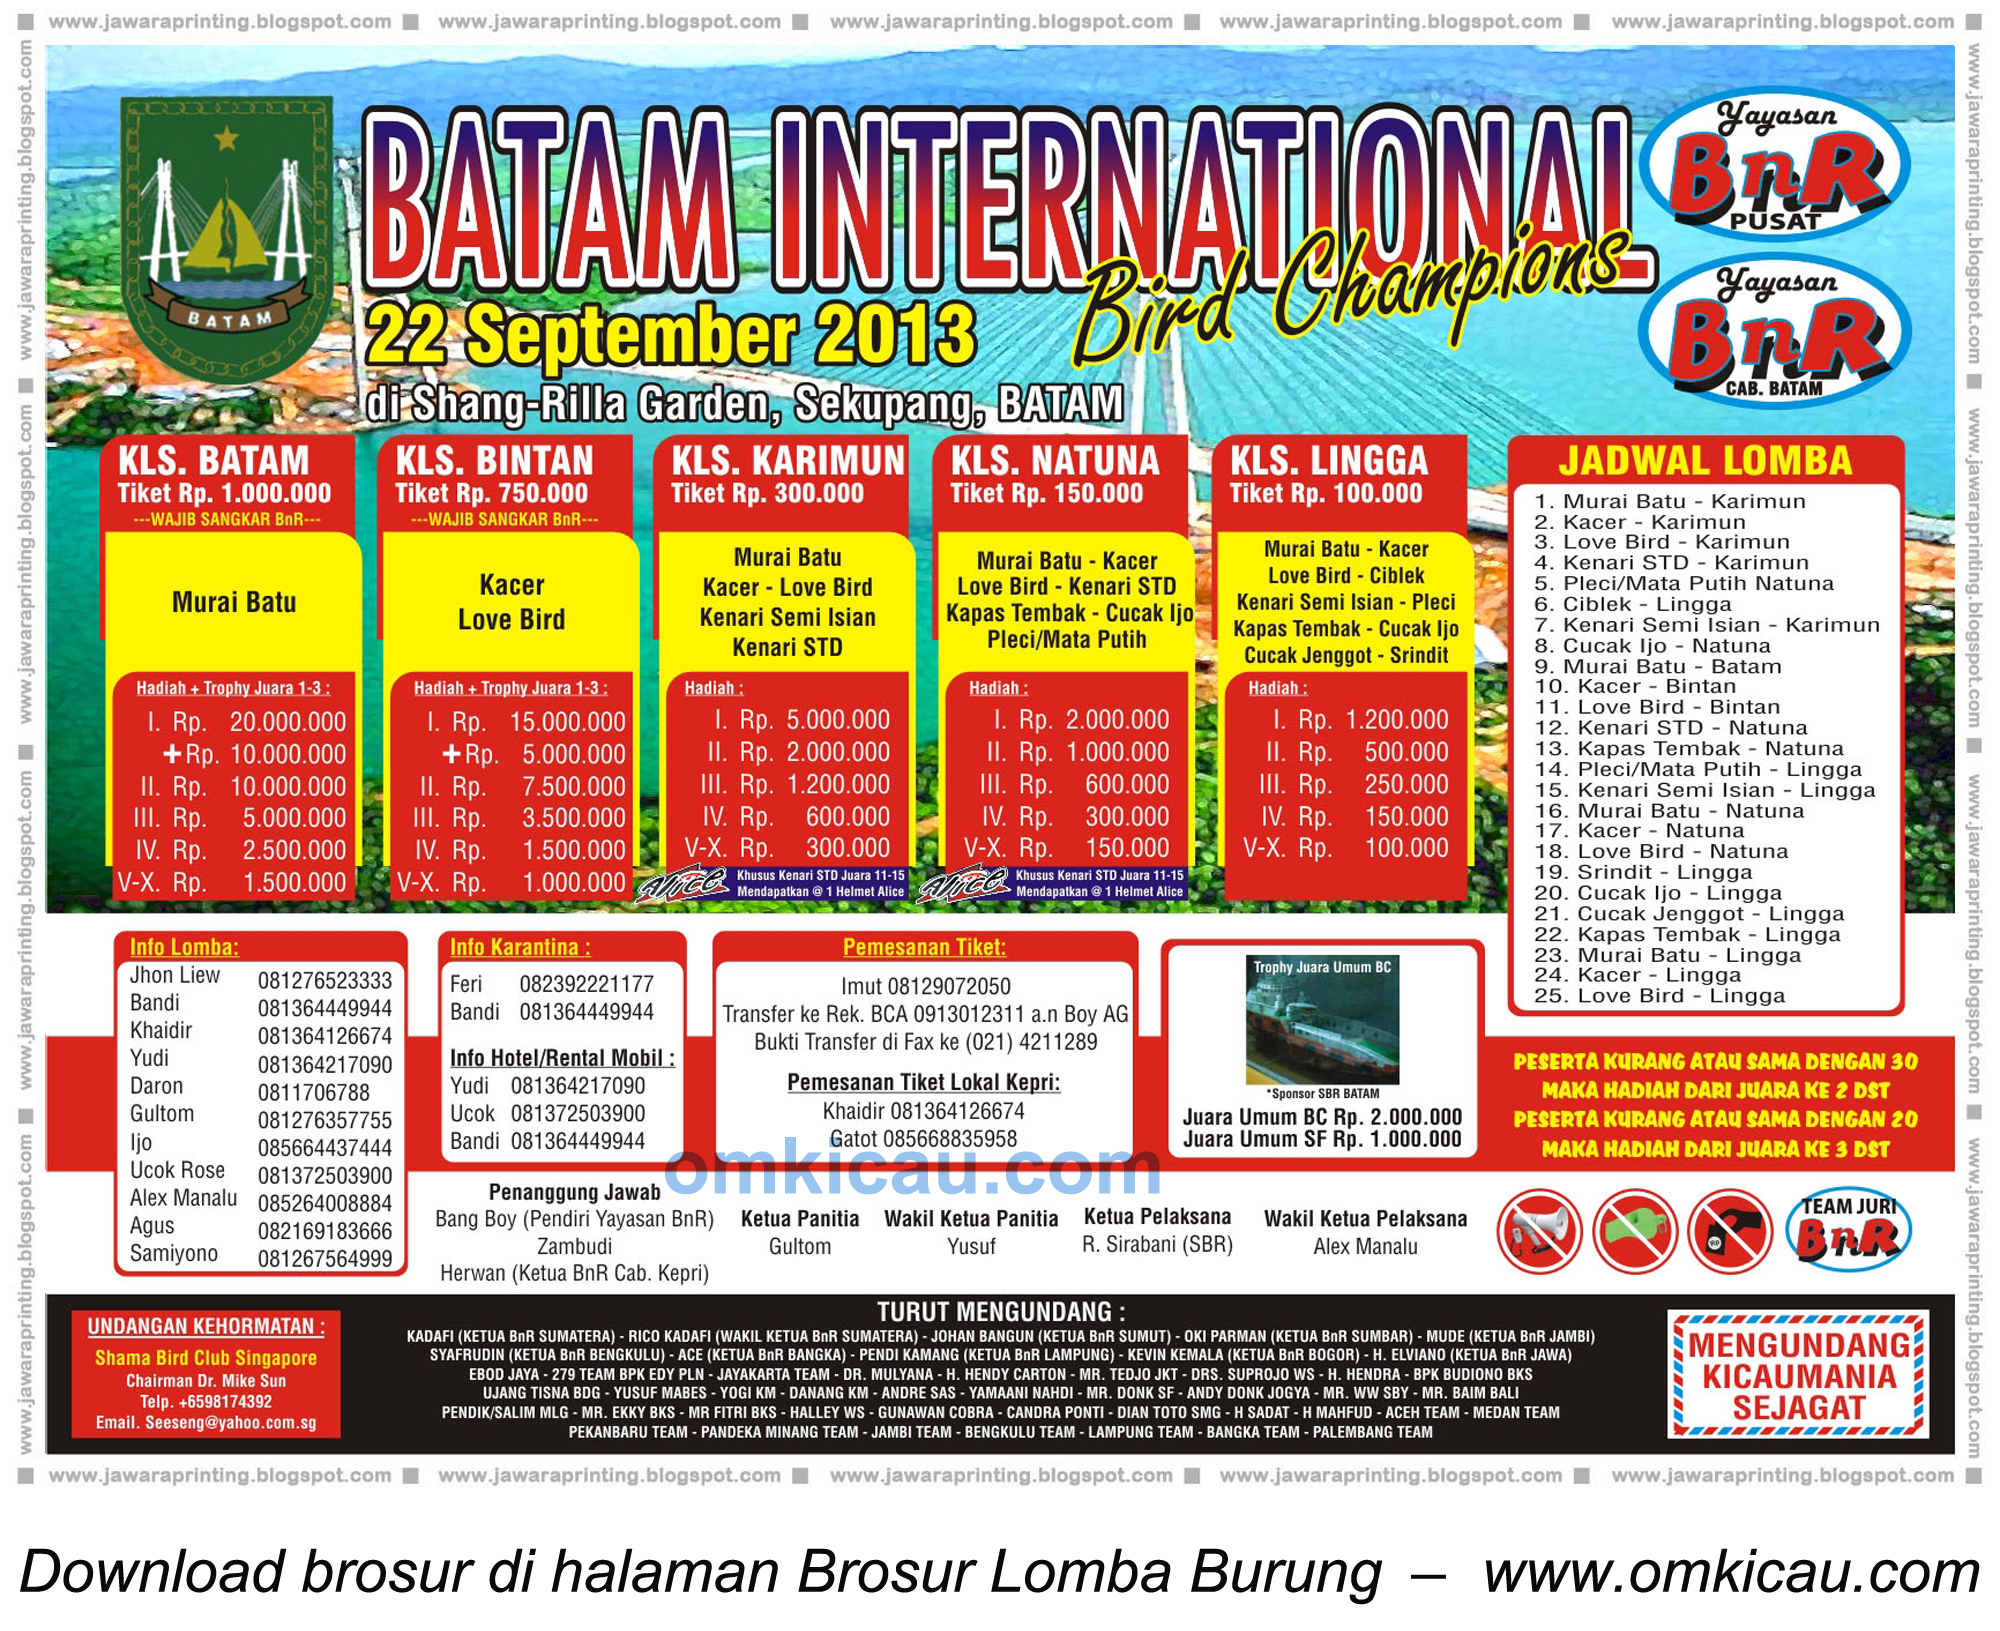 Brosur Batam International Bird Champion, Batam, 22 Sept 2013